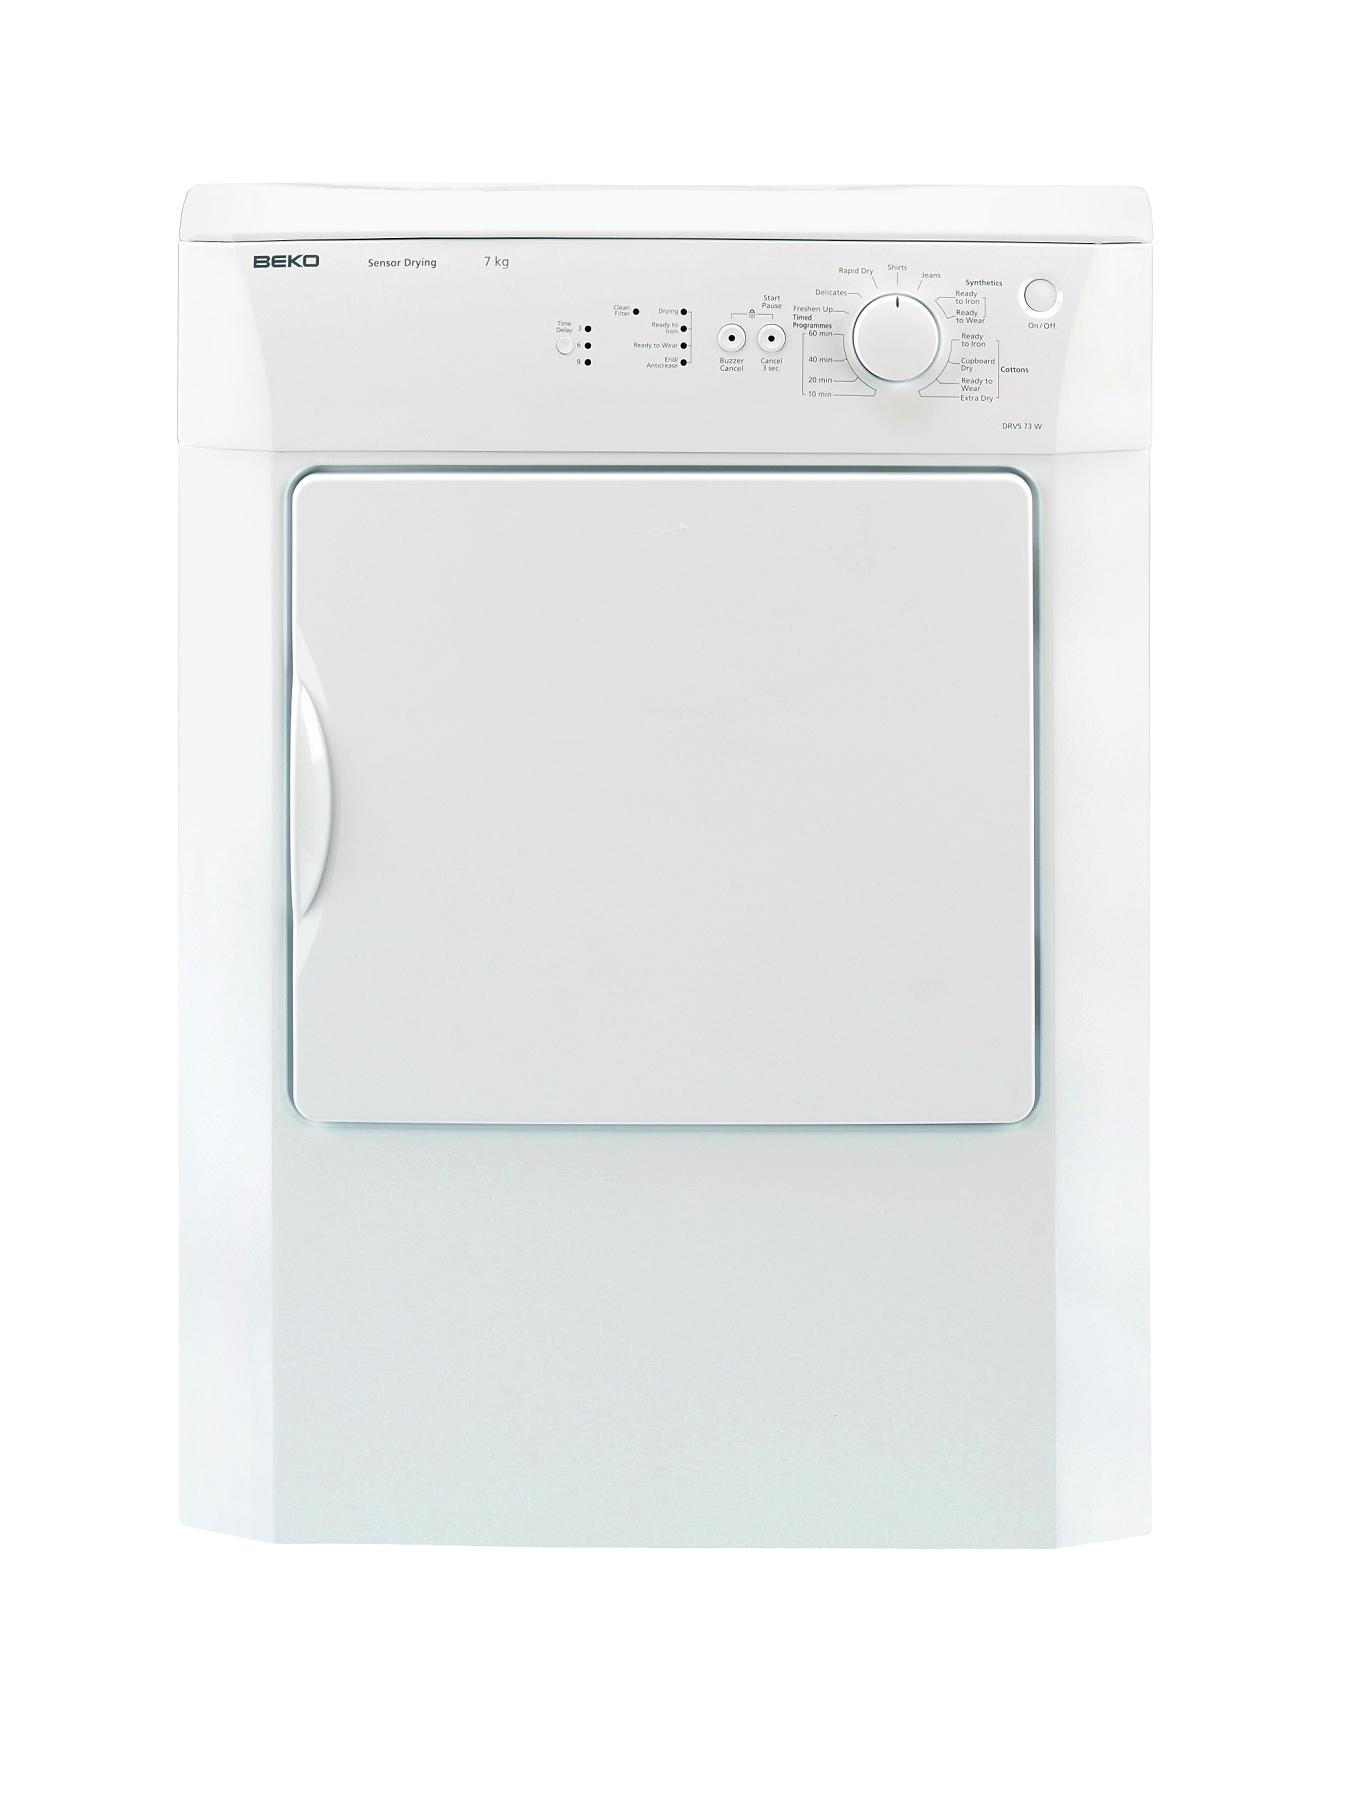 7kg Load Vented Tumble Dryer (Next Day Delivery) - White